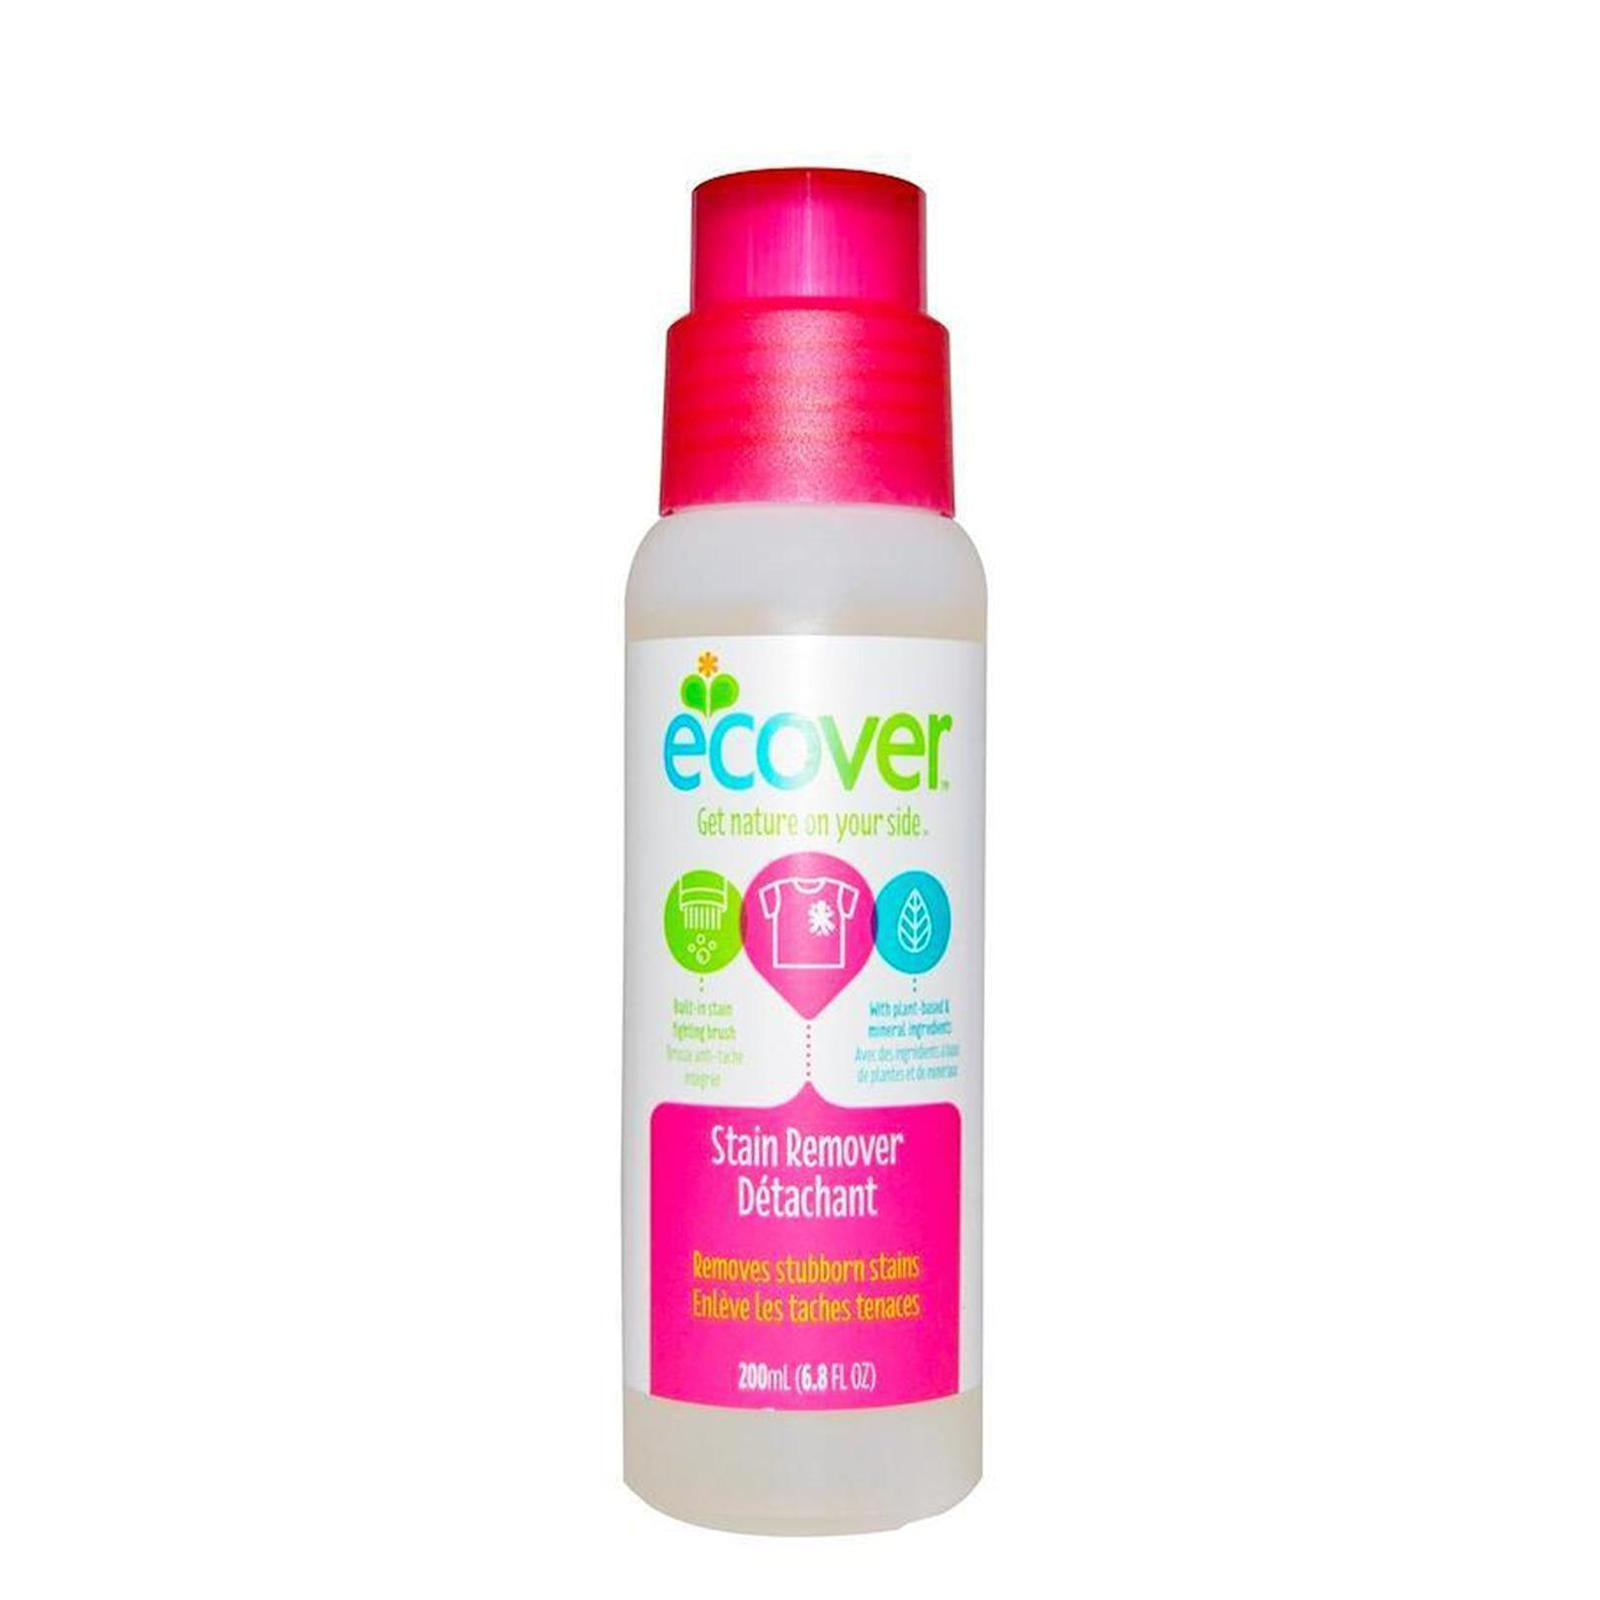 Ecover, Laundry Stain Remover, 6.8 fl oz/200ml